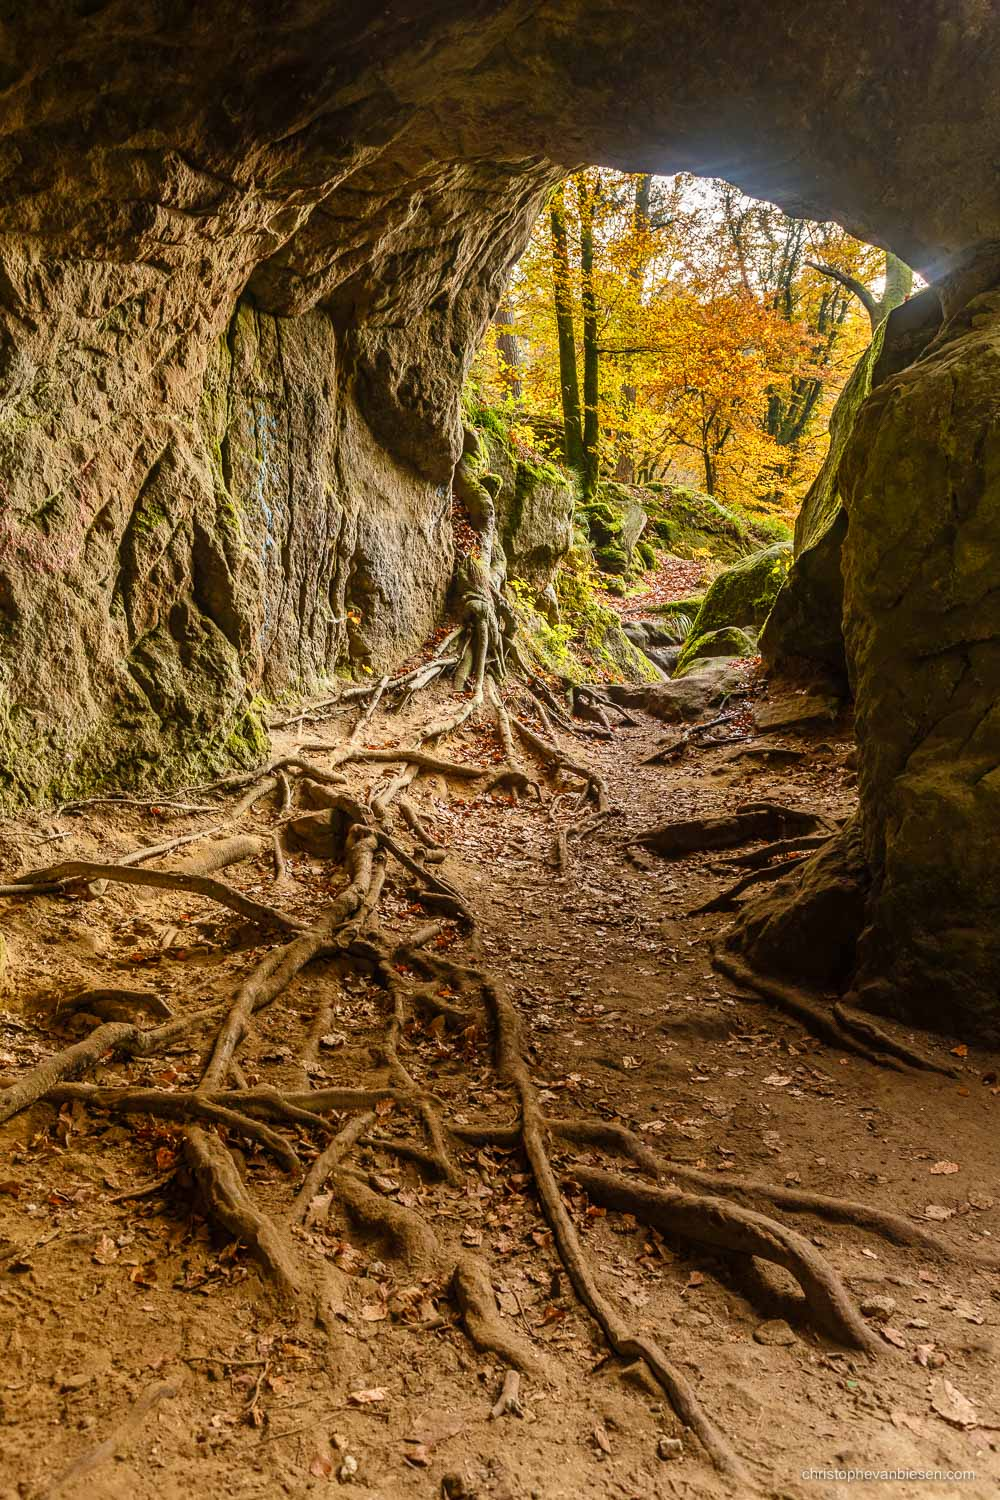 Photography Workshop Mullerthal - Luxembourg - Autumn in Luxembourg's forests in the Mullerthal region near Berdorf - Deep Roots